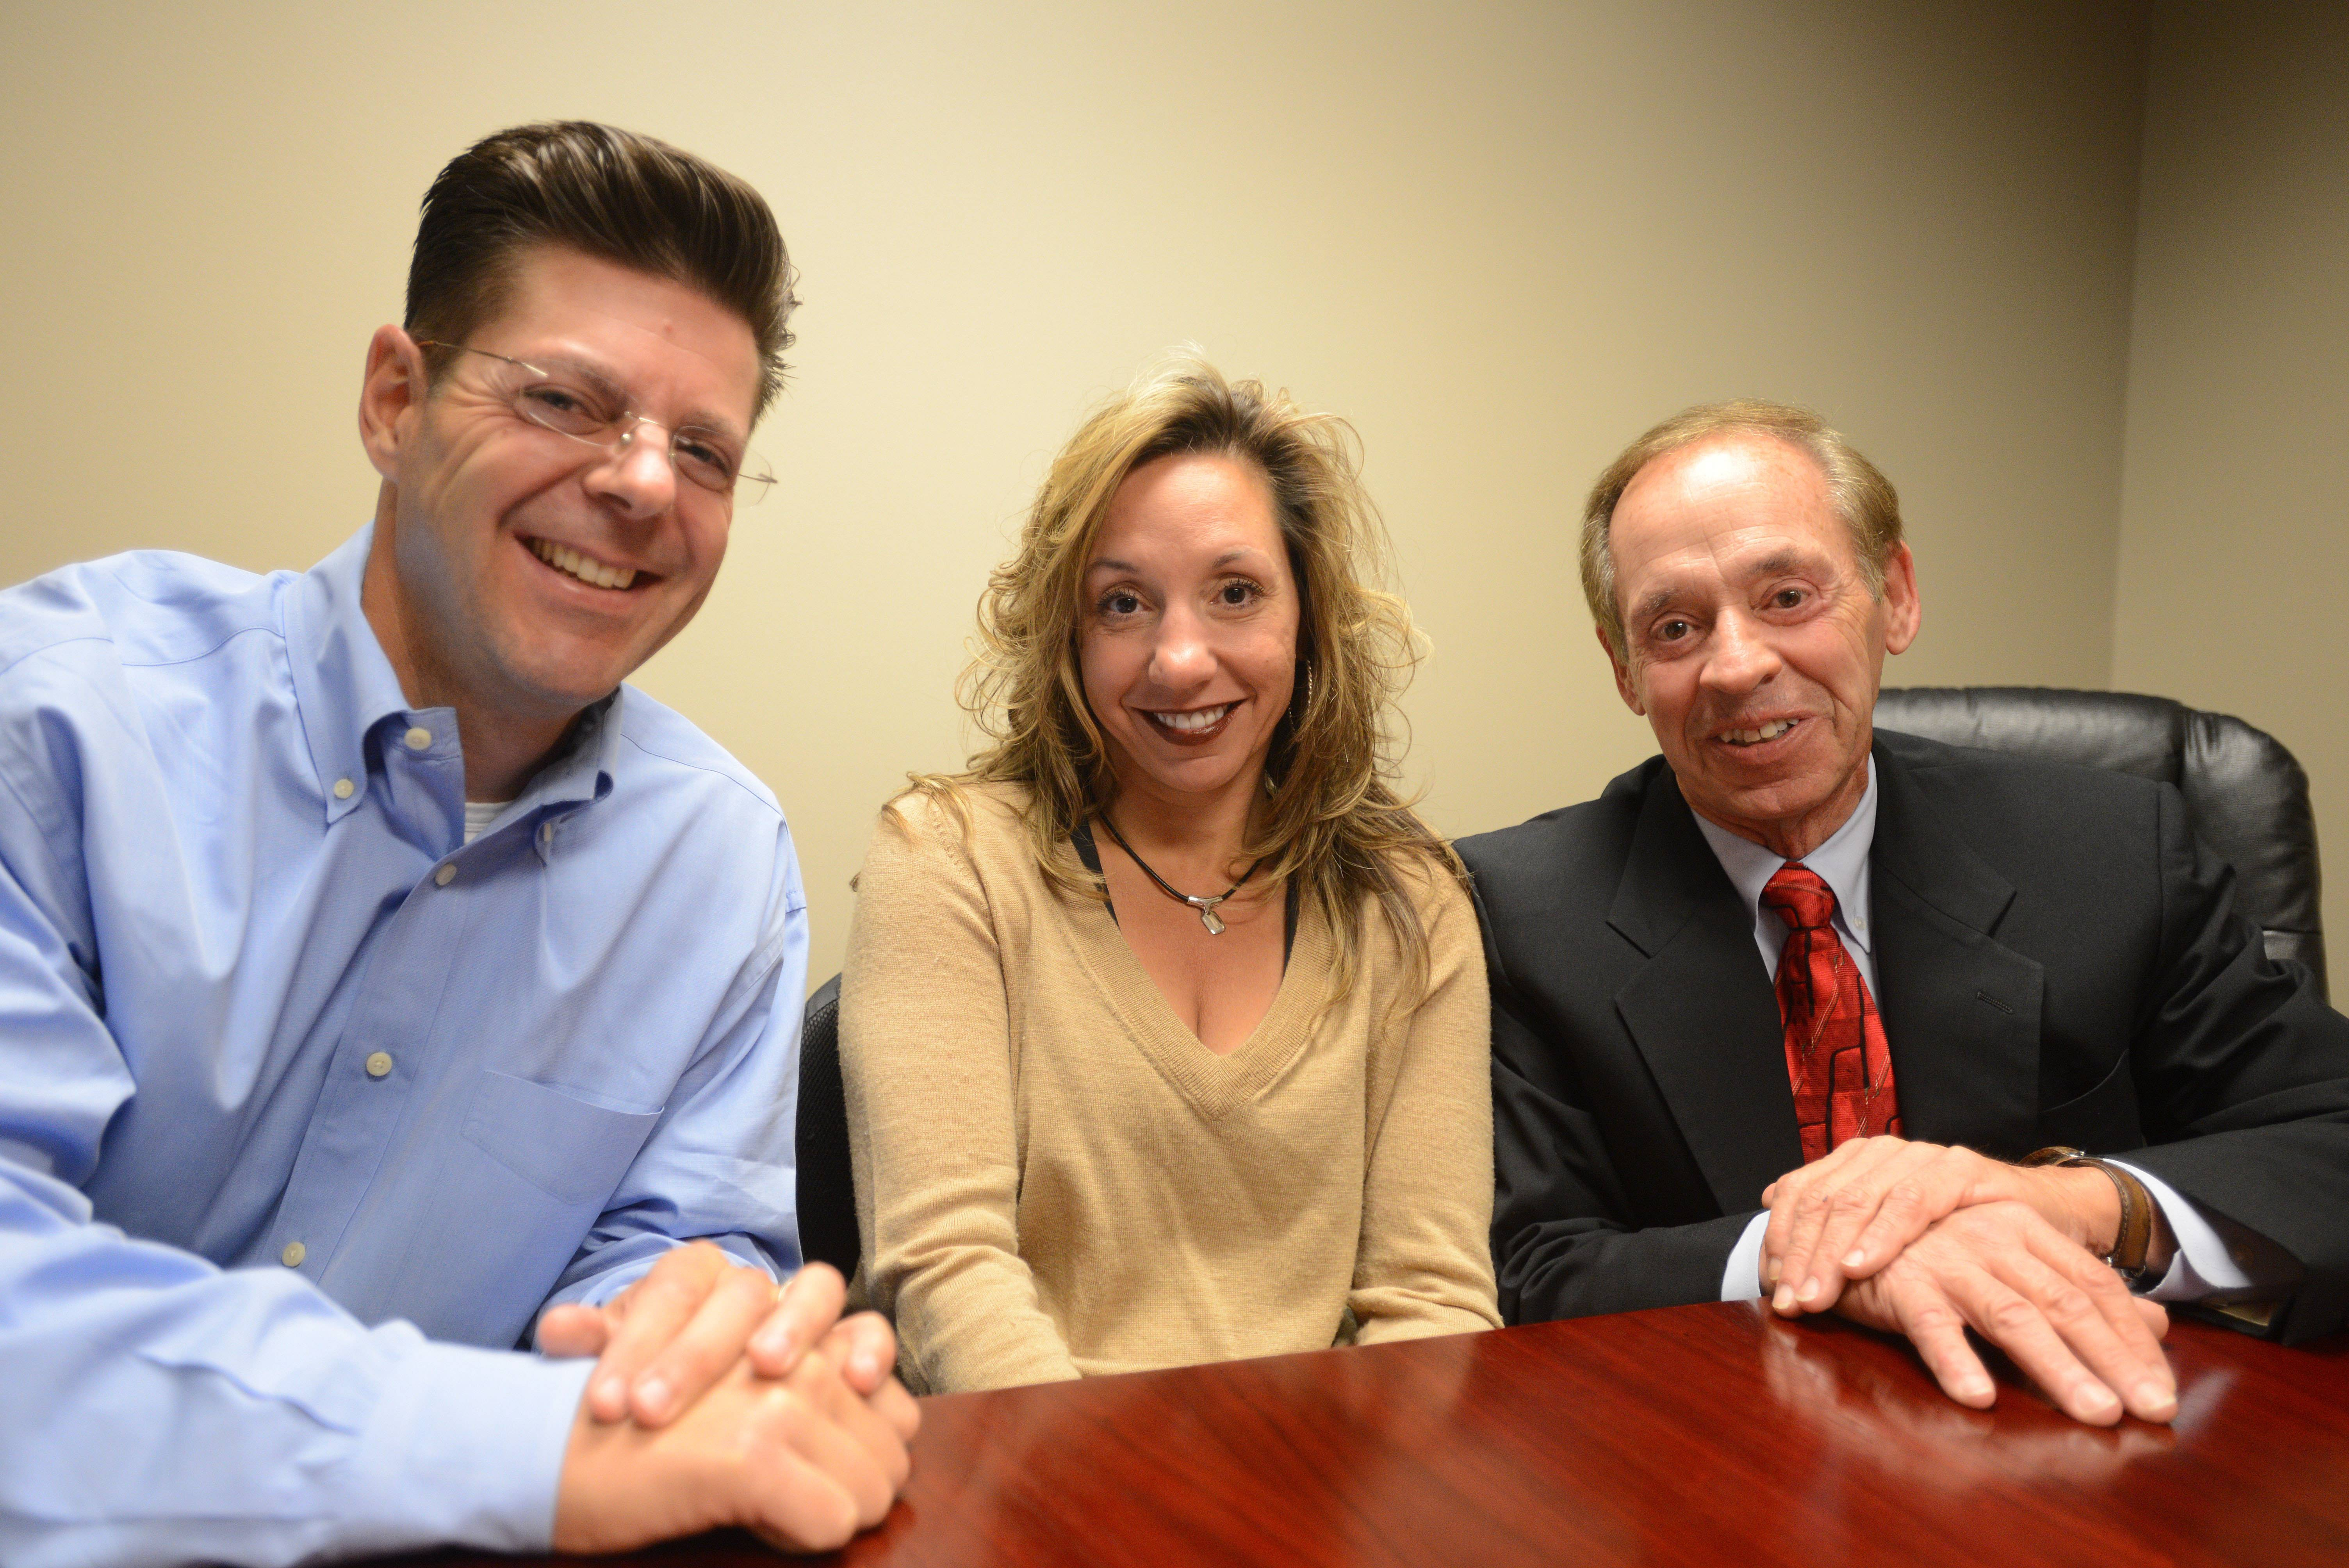 Hugo Fernandez, Traci Fernandez, and Will County Circuit Judge Robert Livas are three of the four founders of 3C Compassionate Care Centers, which plans to open medical marijuana dispensaries in Naperville and Joliet.